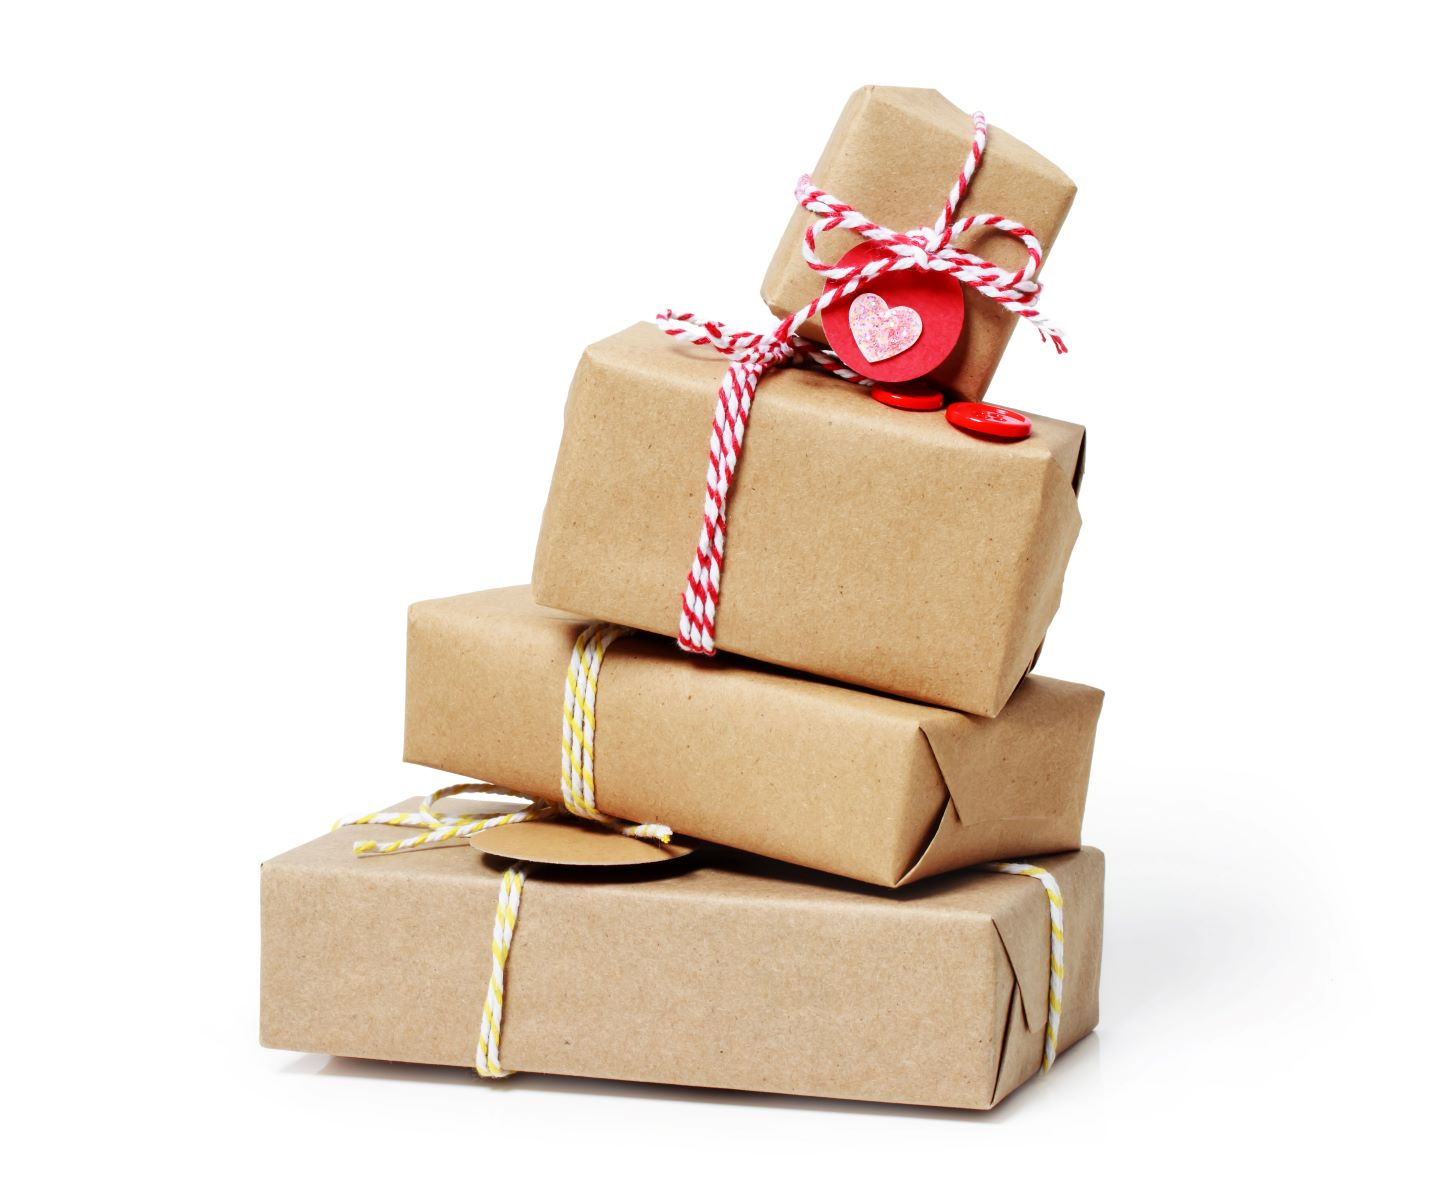 image of stack of packages